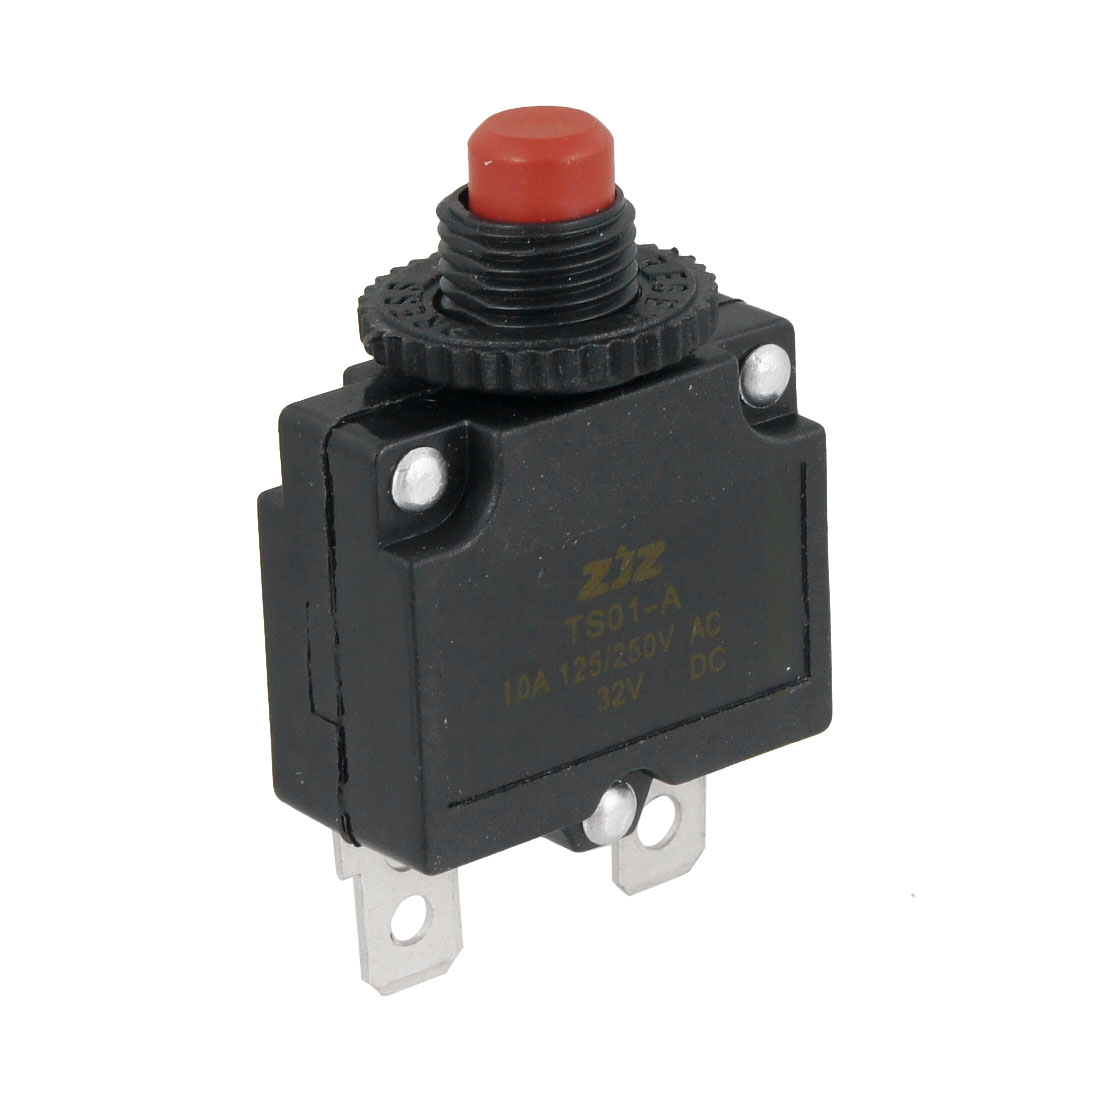 "1.8"" Tall AC 10A Circuit Breaker Overload Protector for Air Compressor"